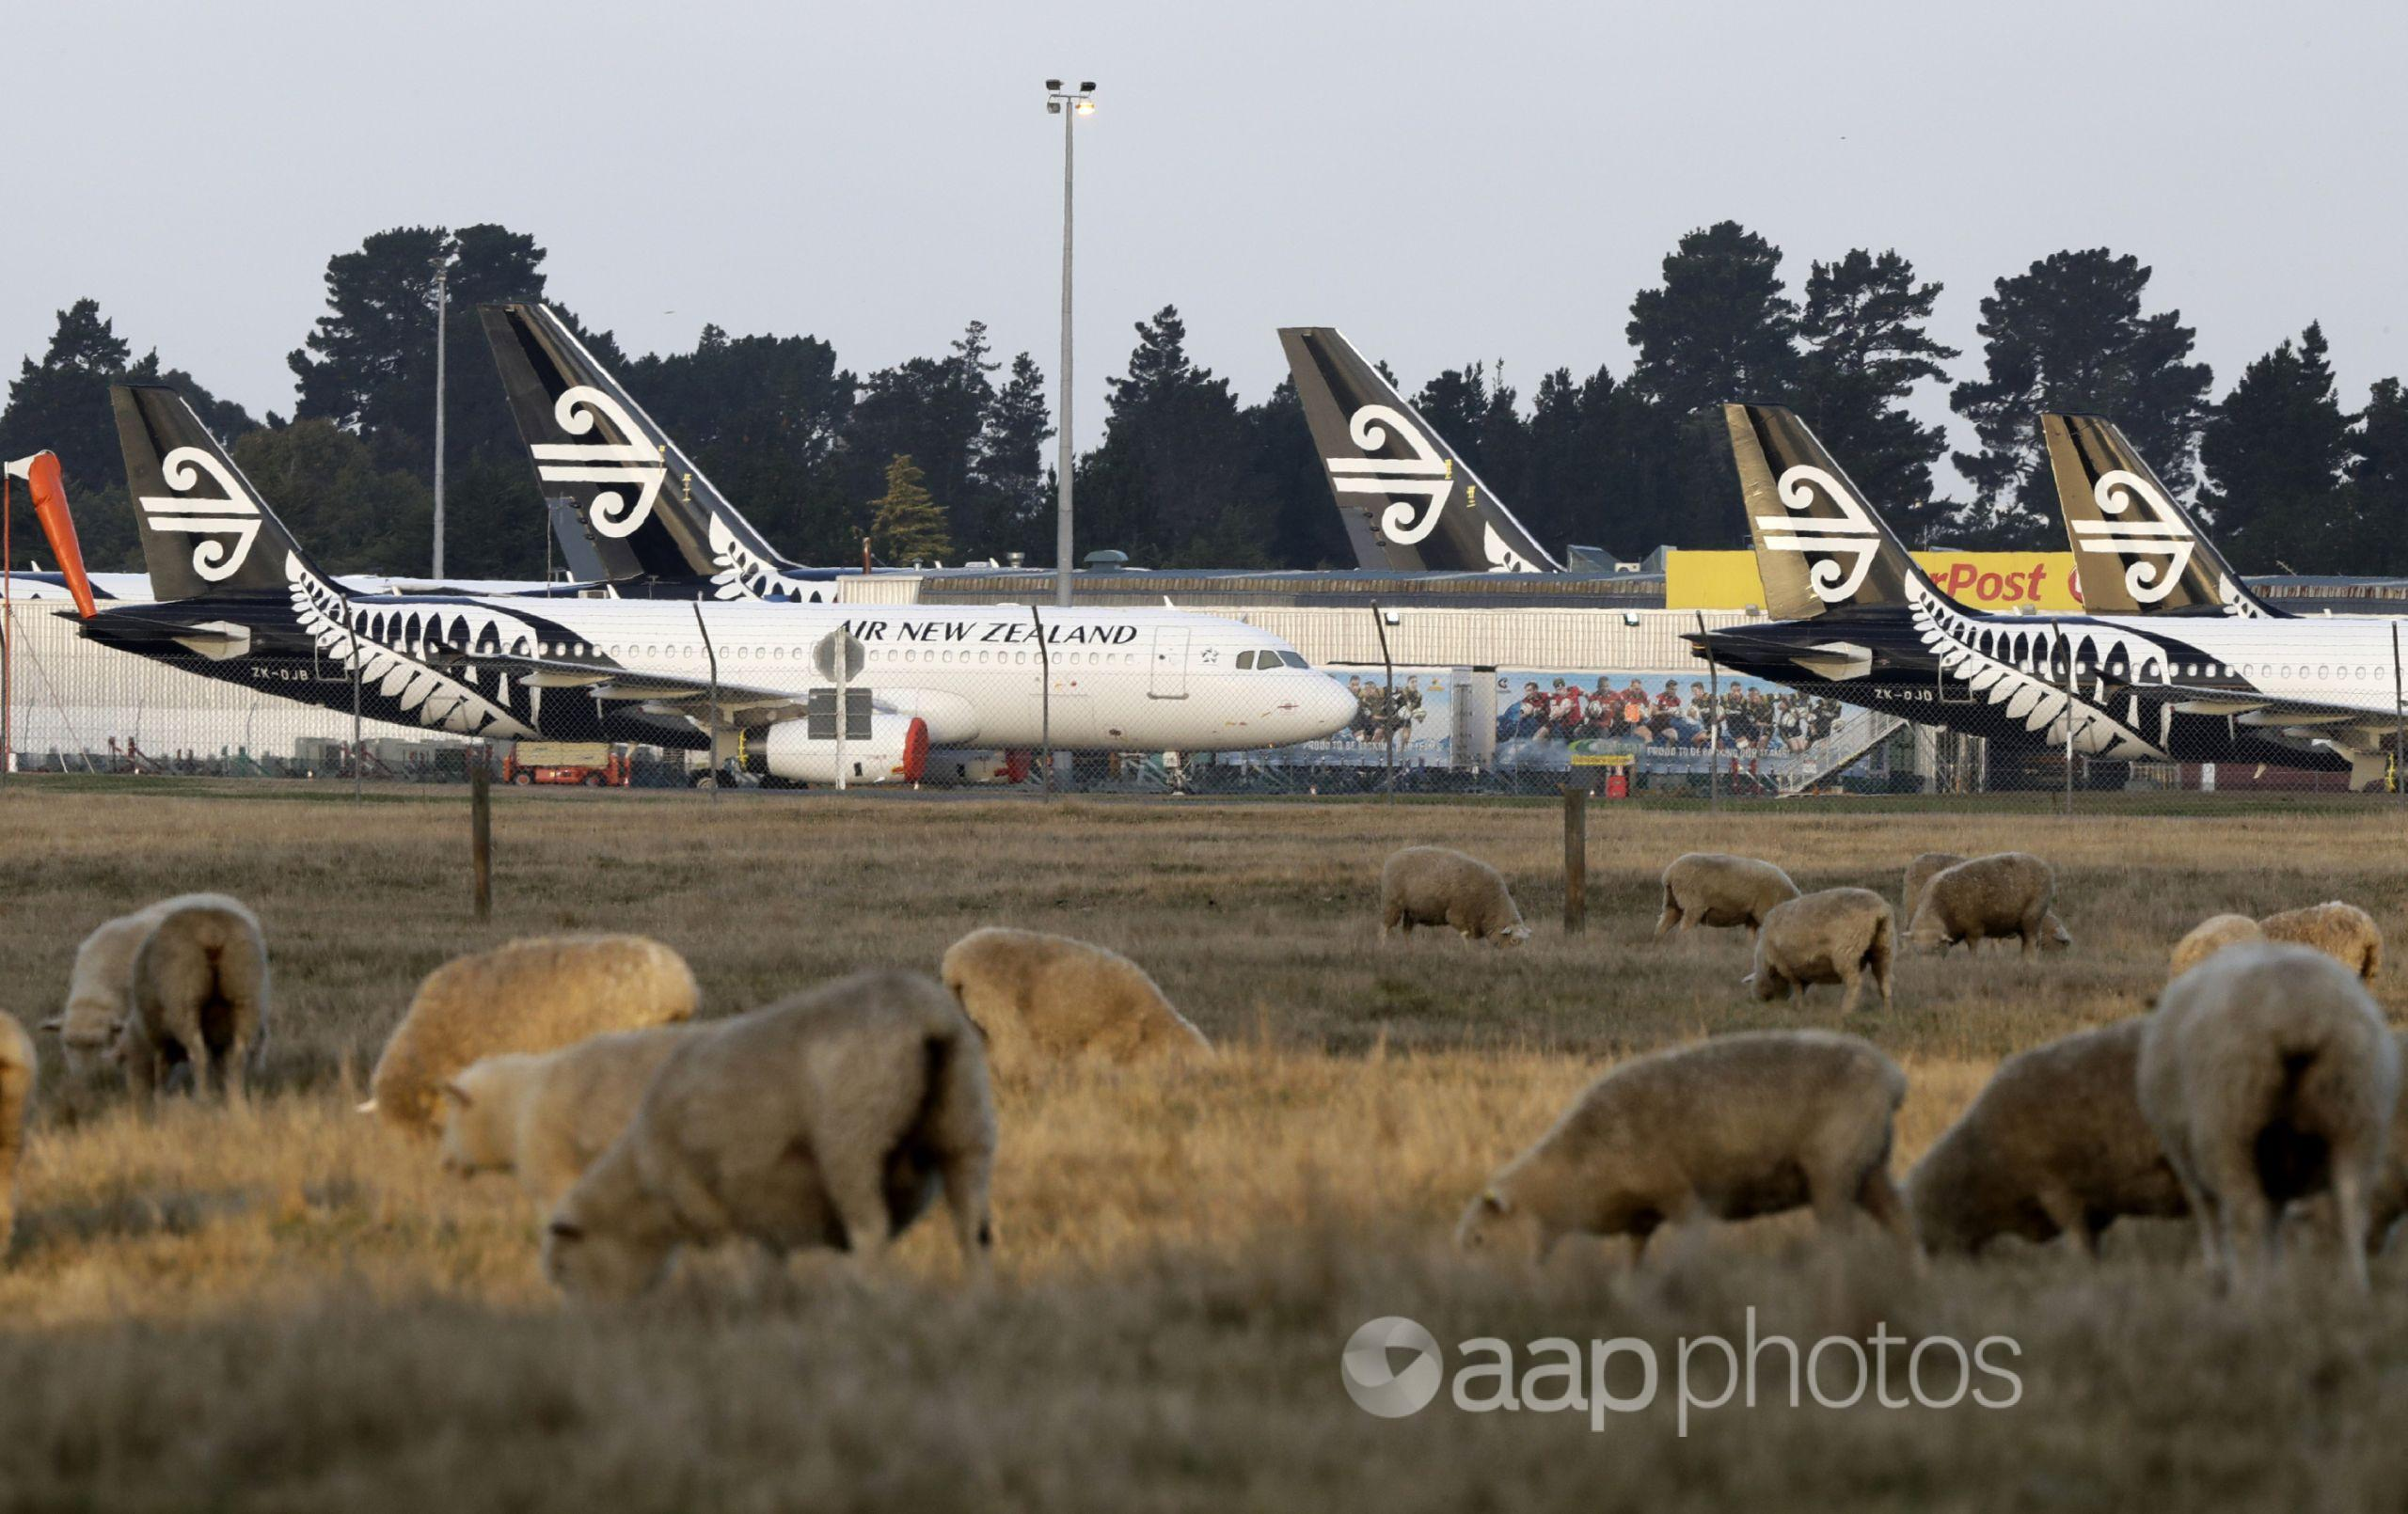 sheep in a paddock outside an airport full of parked Air NZ planes